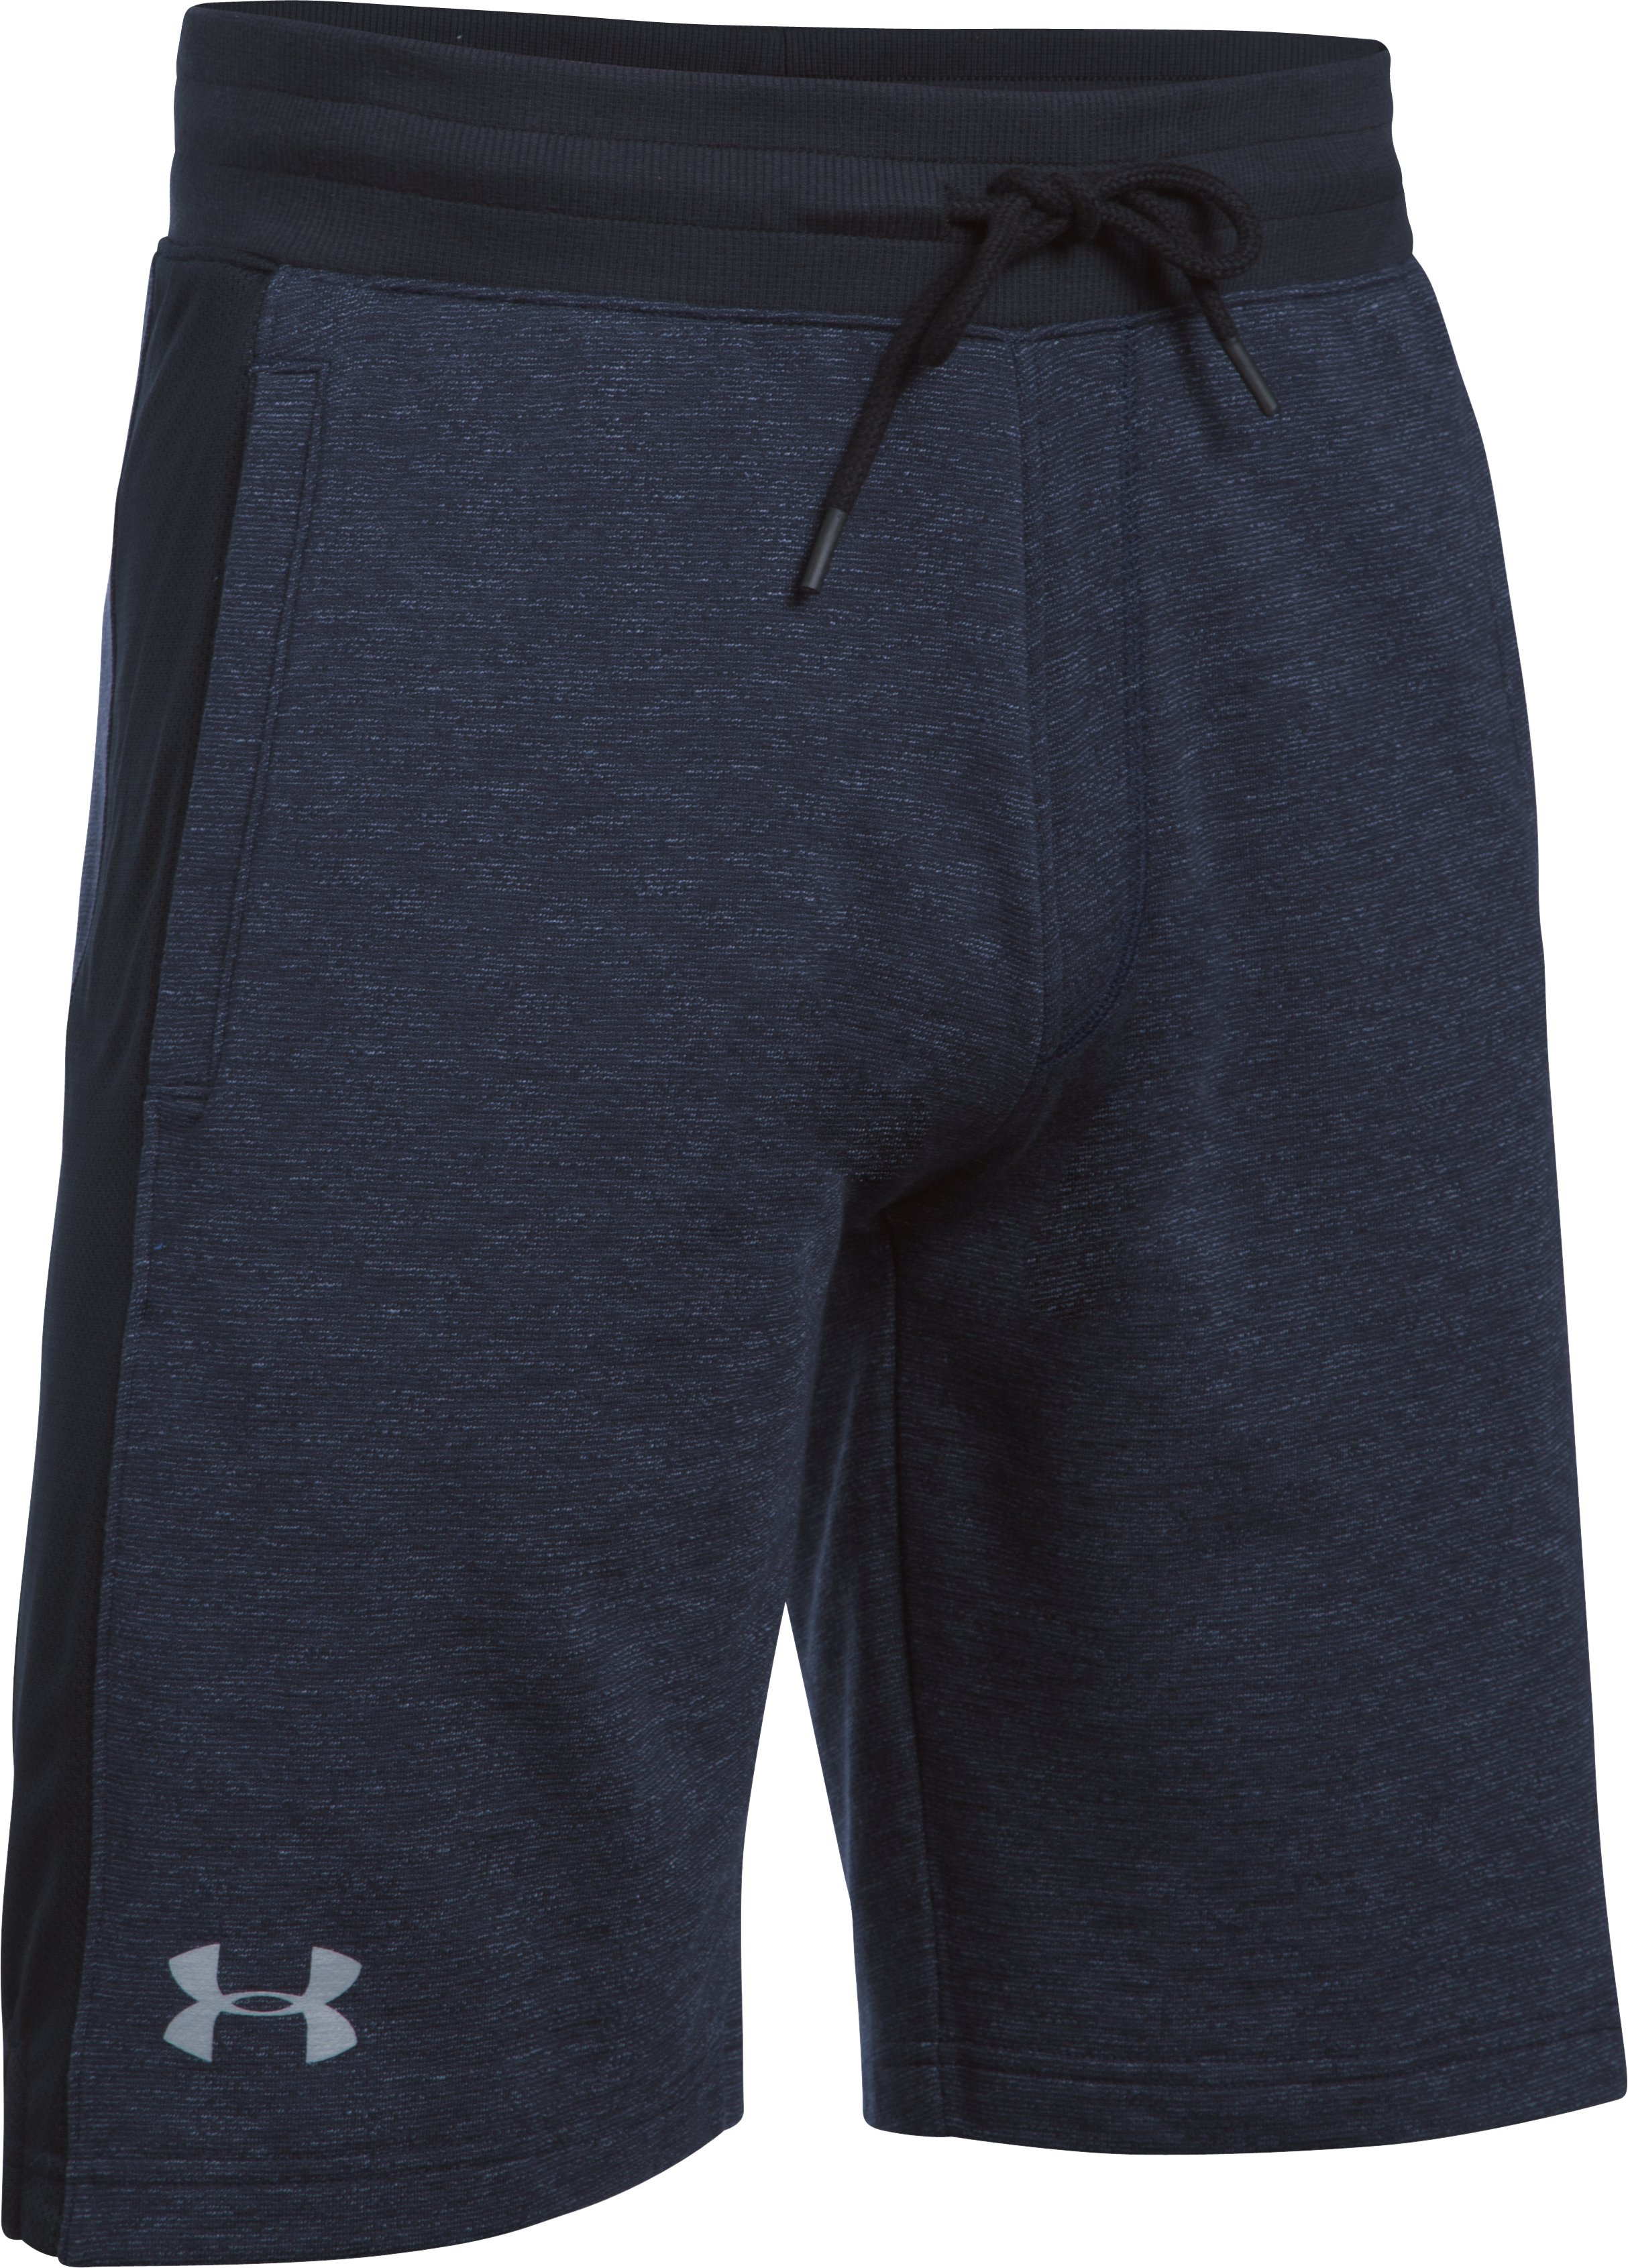 Men's UA Sportstyle Fleece Graphic Shorts, Midnight Navy,